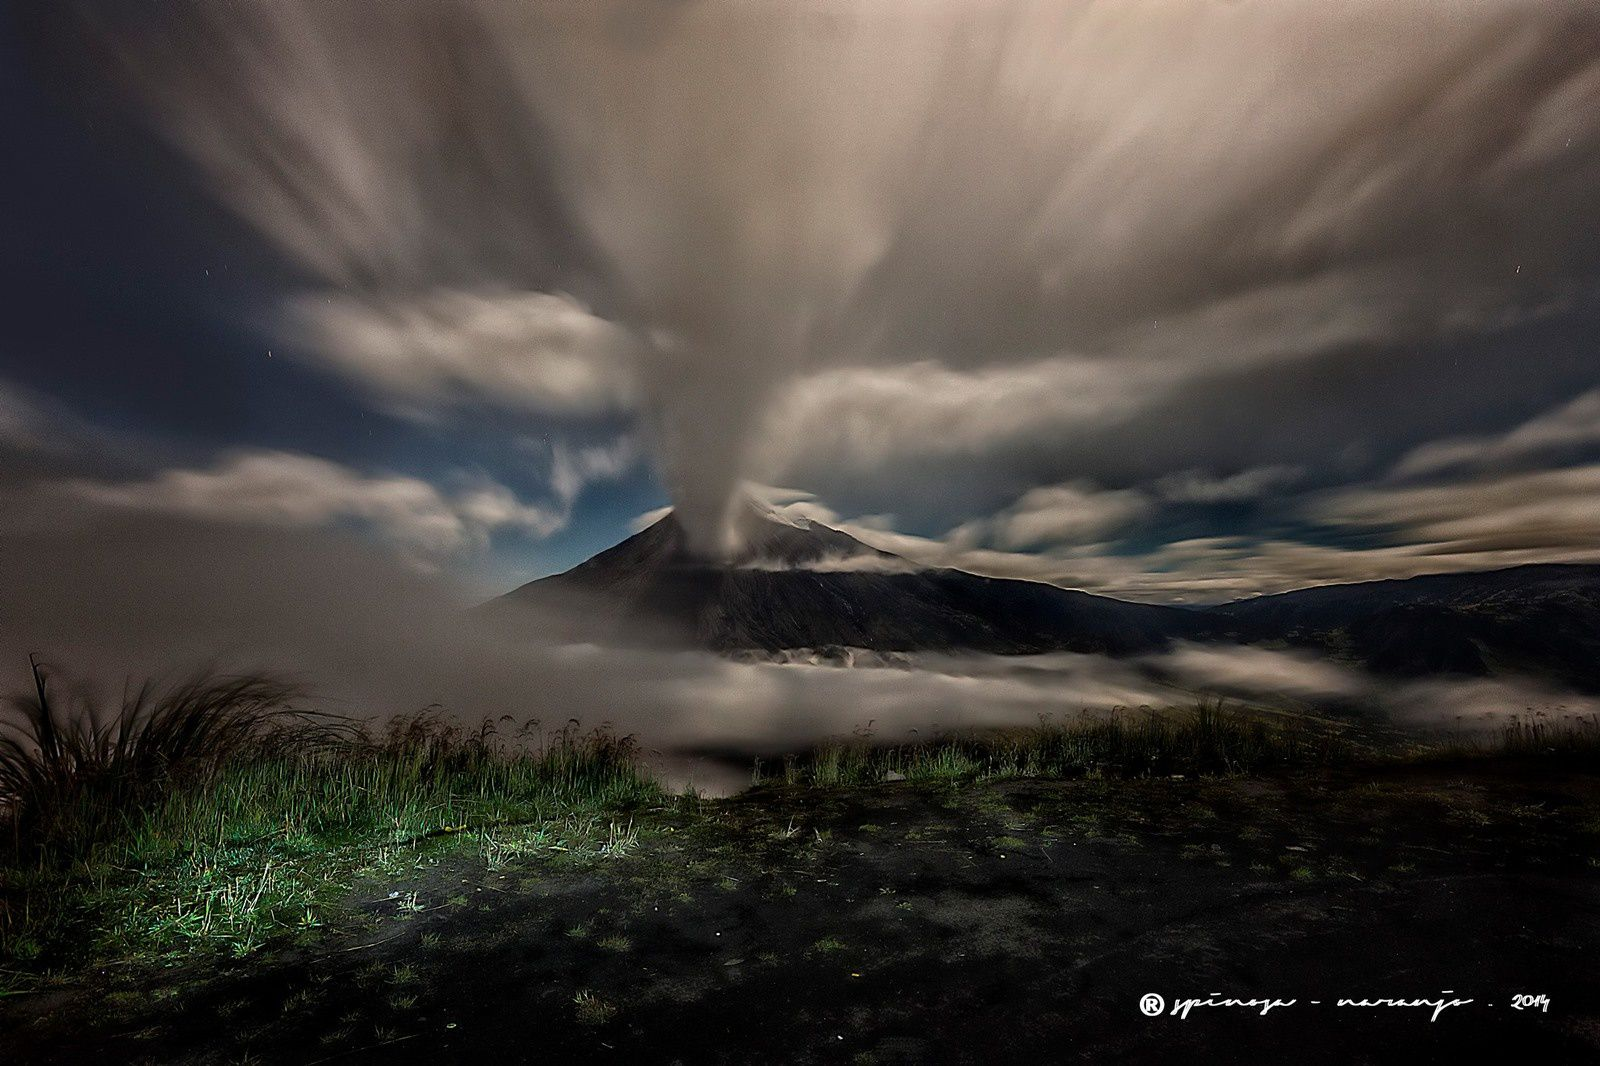 Tungurahua / Equateur - photo © Jose Luis Espinosa-Naranjo